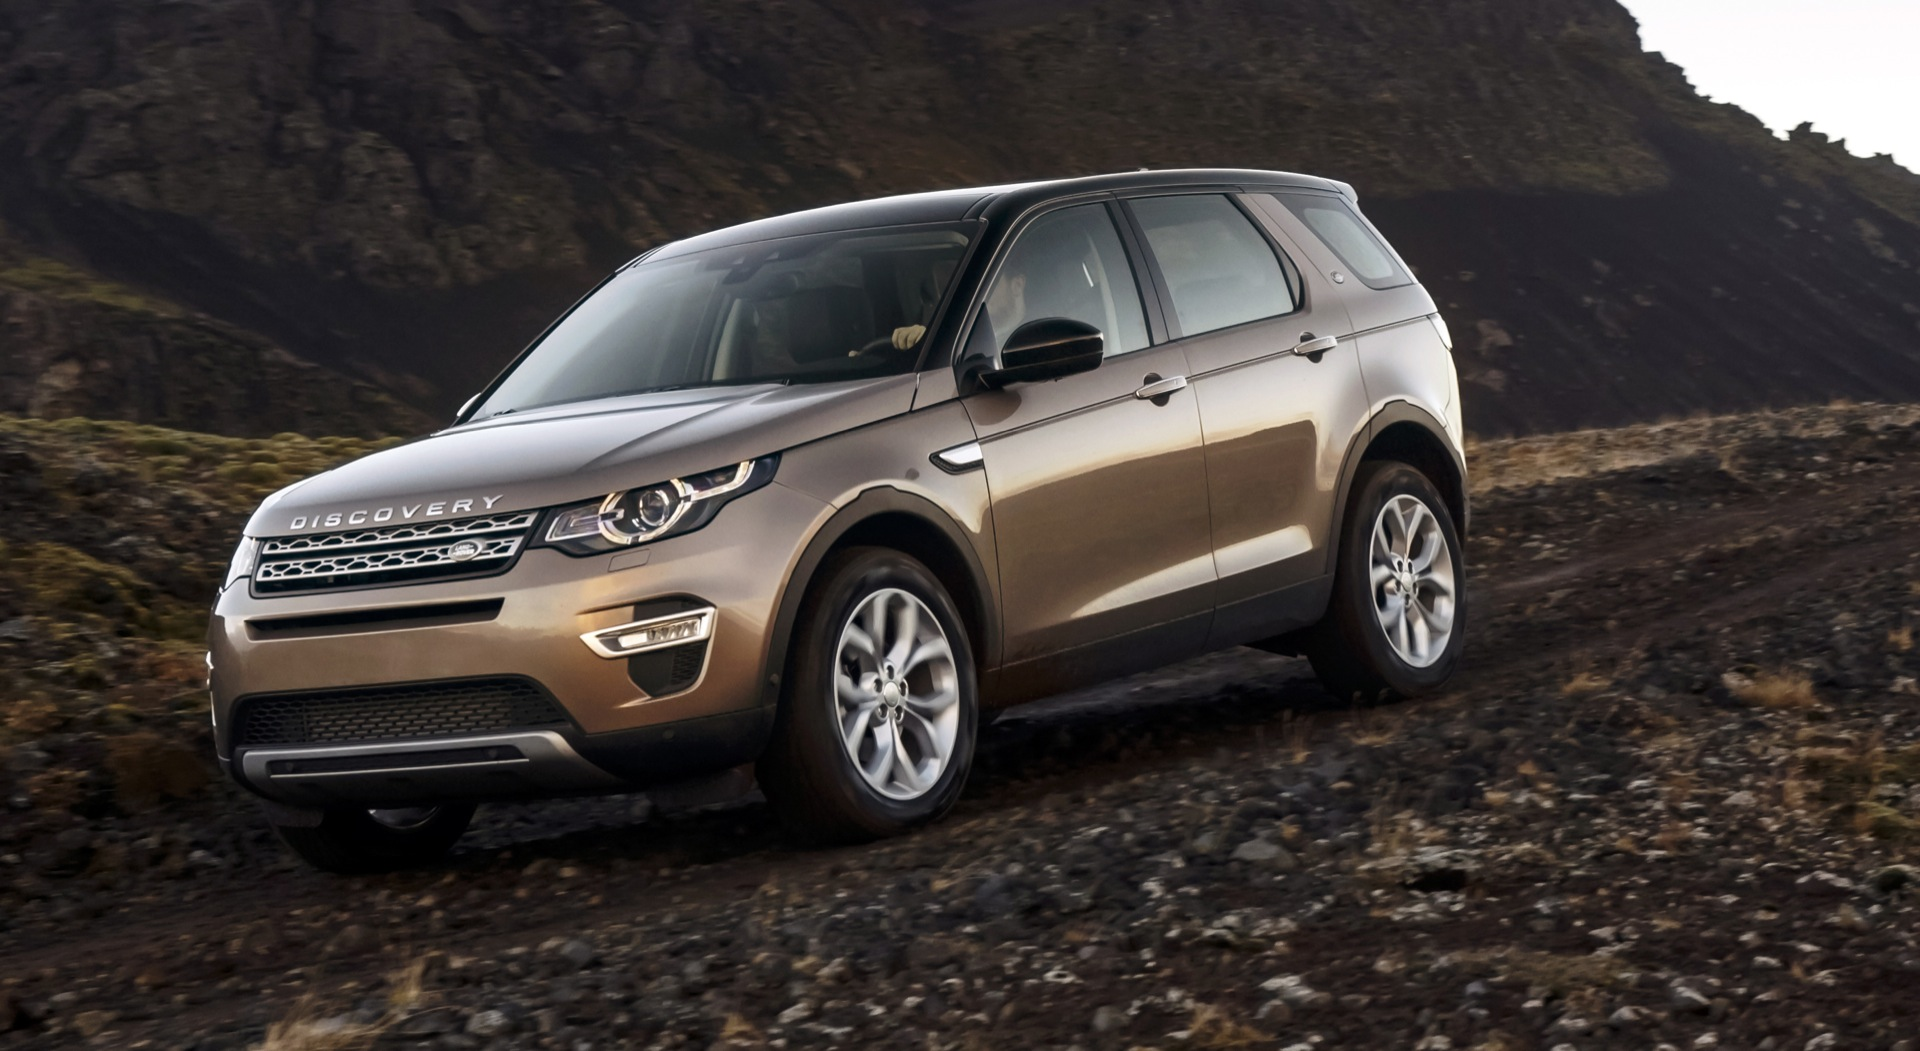 2016 Land Rover Discovery Sport #4